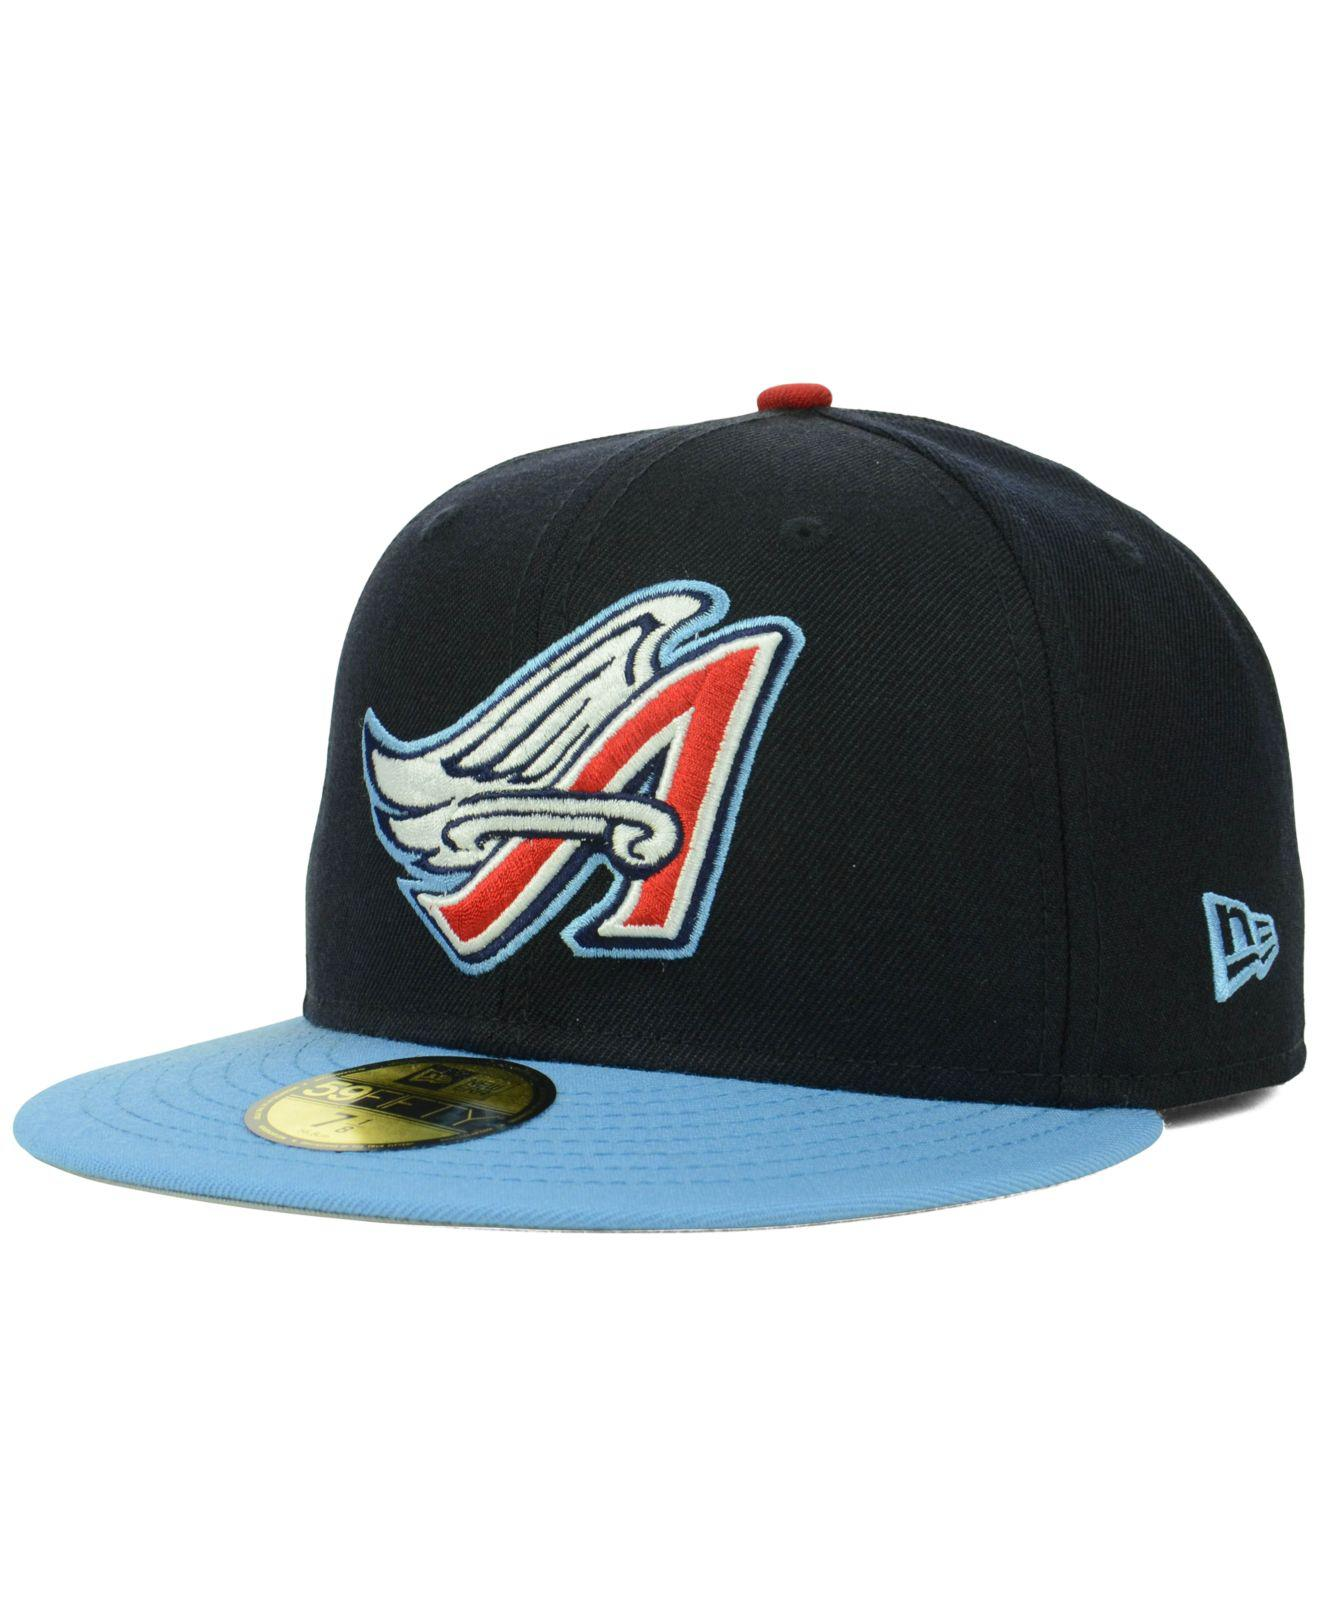 85c974807ad KTZ - Blue Los Angeles Angels Of Anaheim Cooperstown 59fifty Cap for Men -  Lyst. View fullscreen